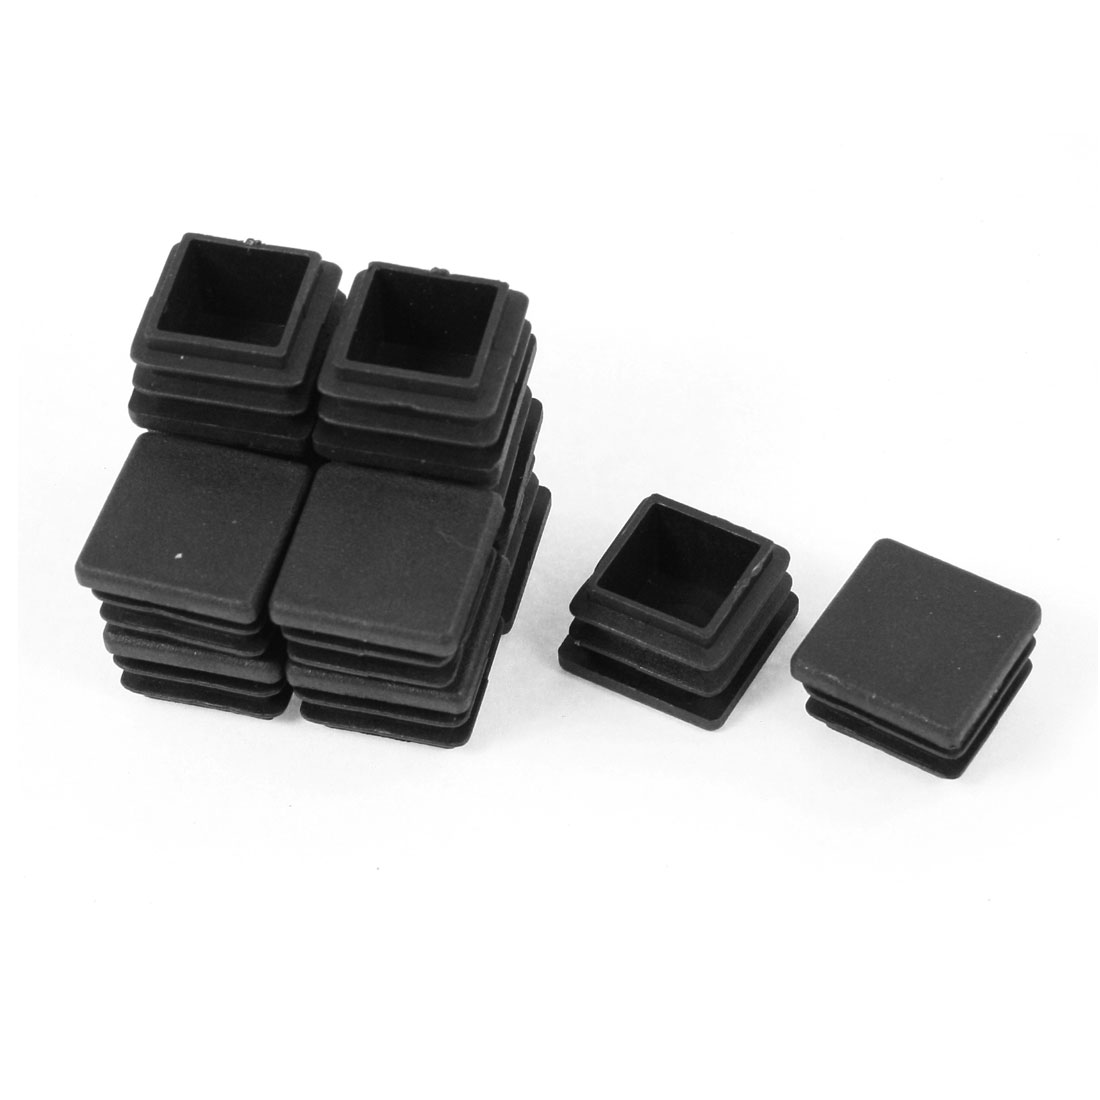 12 Pieces Black Plastic Square Blanking End Caps Tubing Tube Inserts 20mm x 20mm